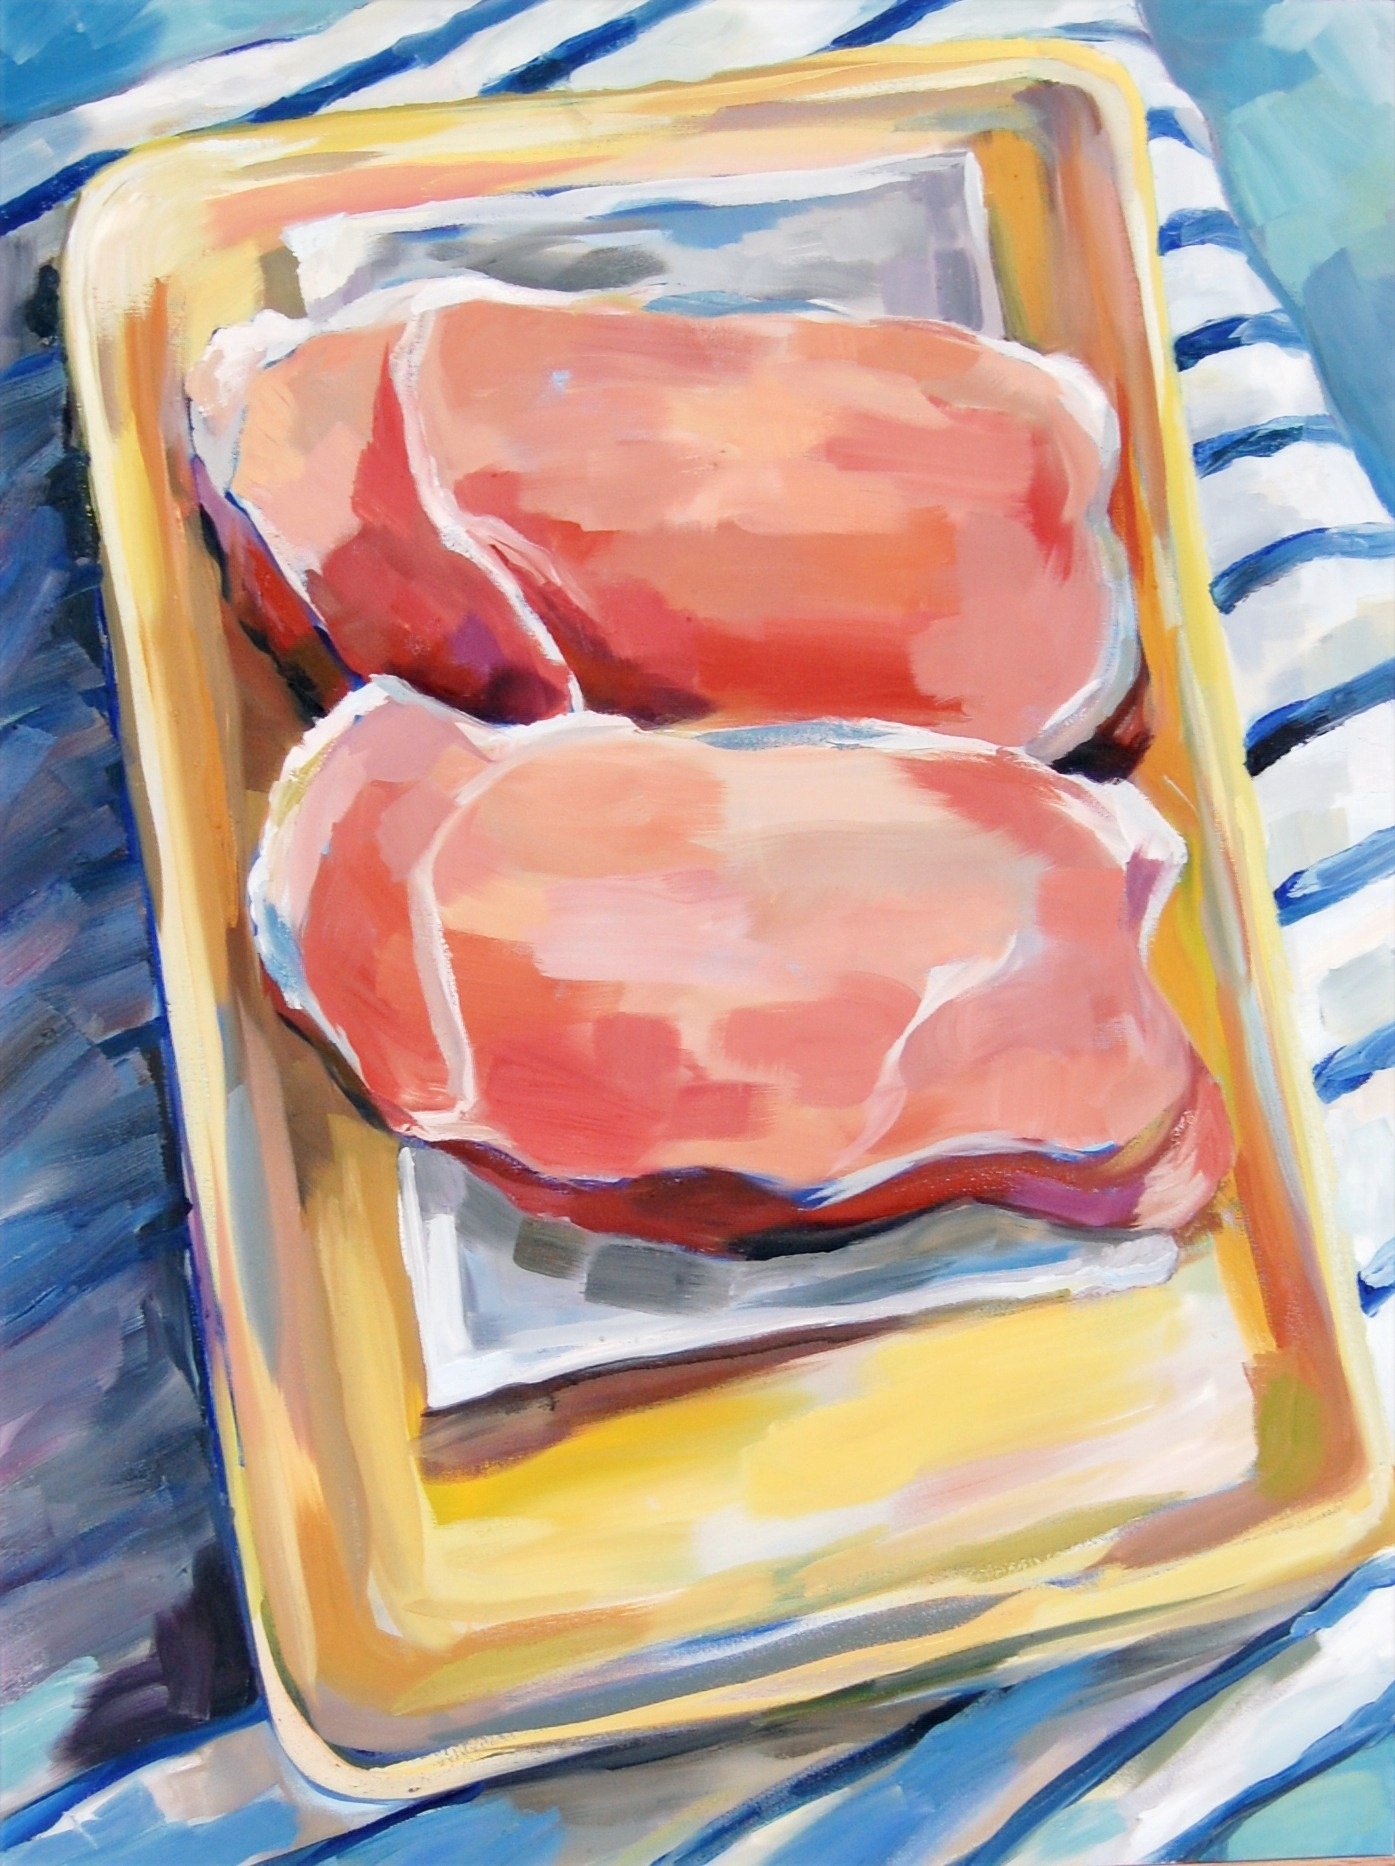 Supermarket Pink Pork, Oil on canvas, 014